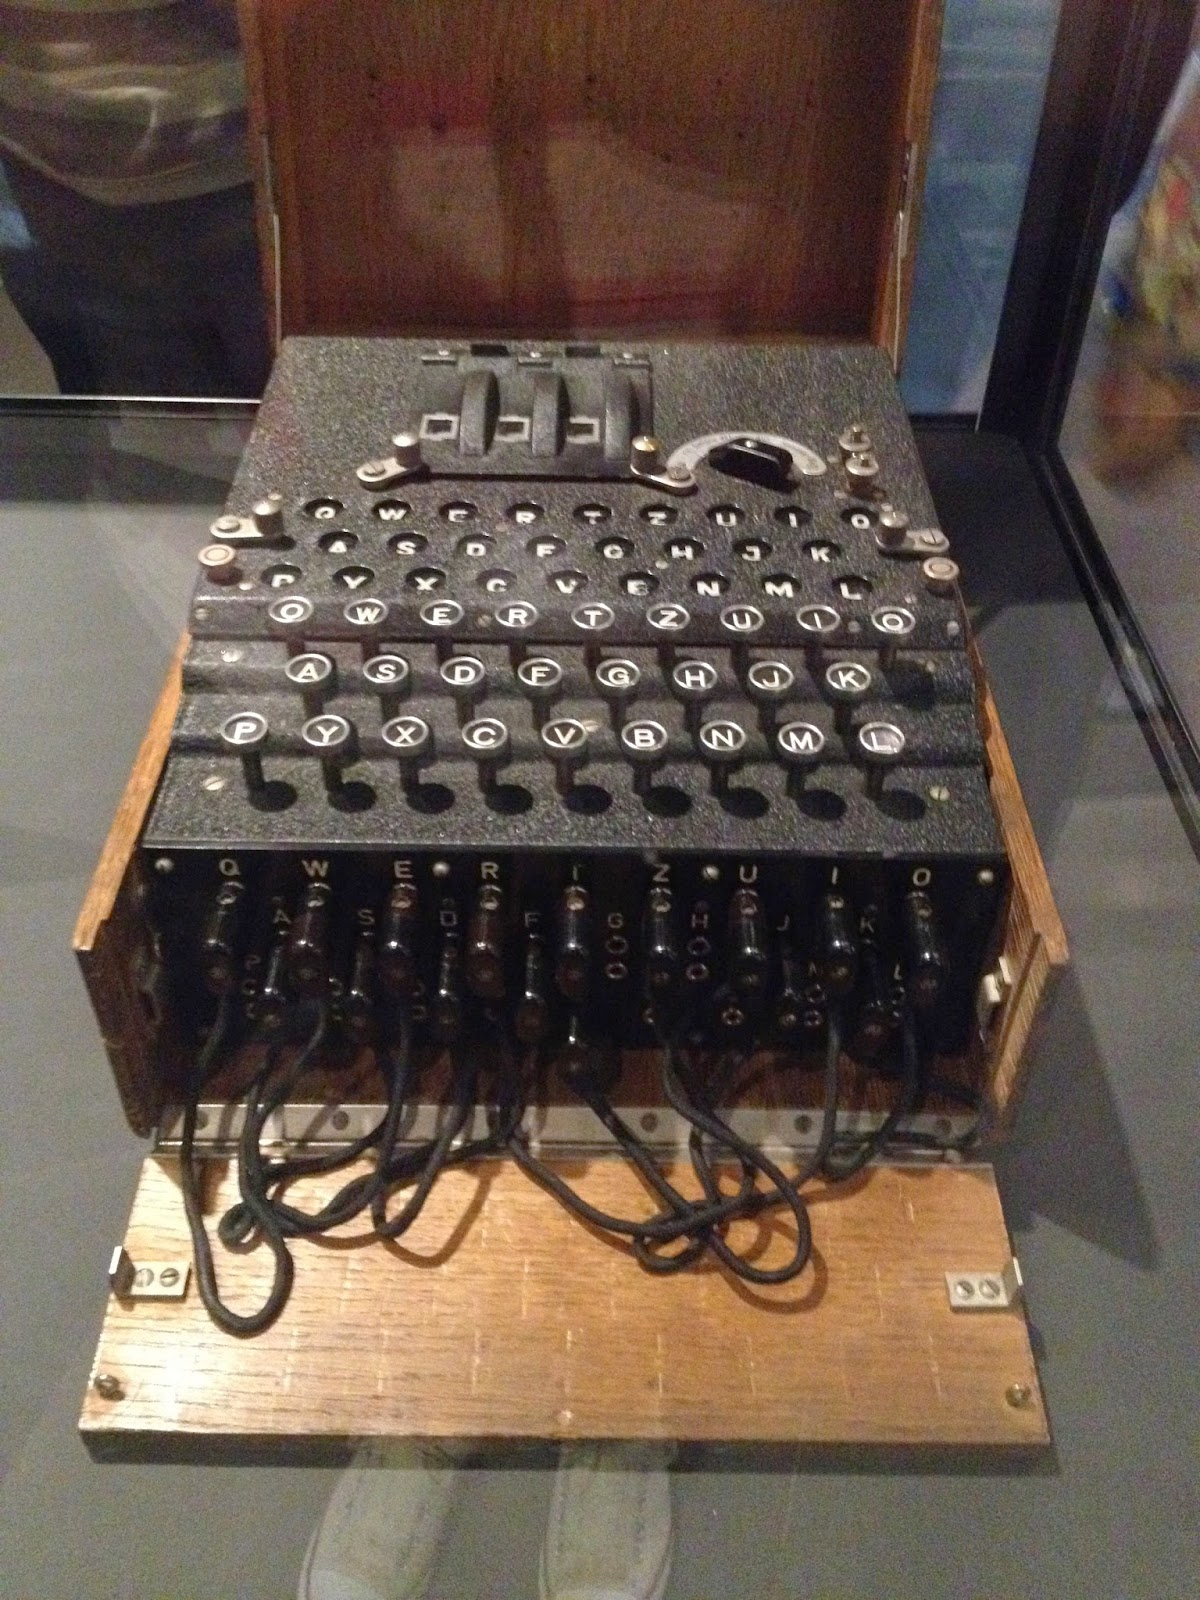 Enigma Machine Imperial War Museum (photo credit: http://researchandramblings.blogspot.com/)